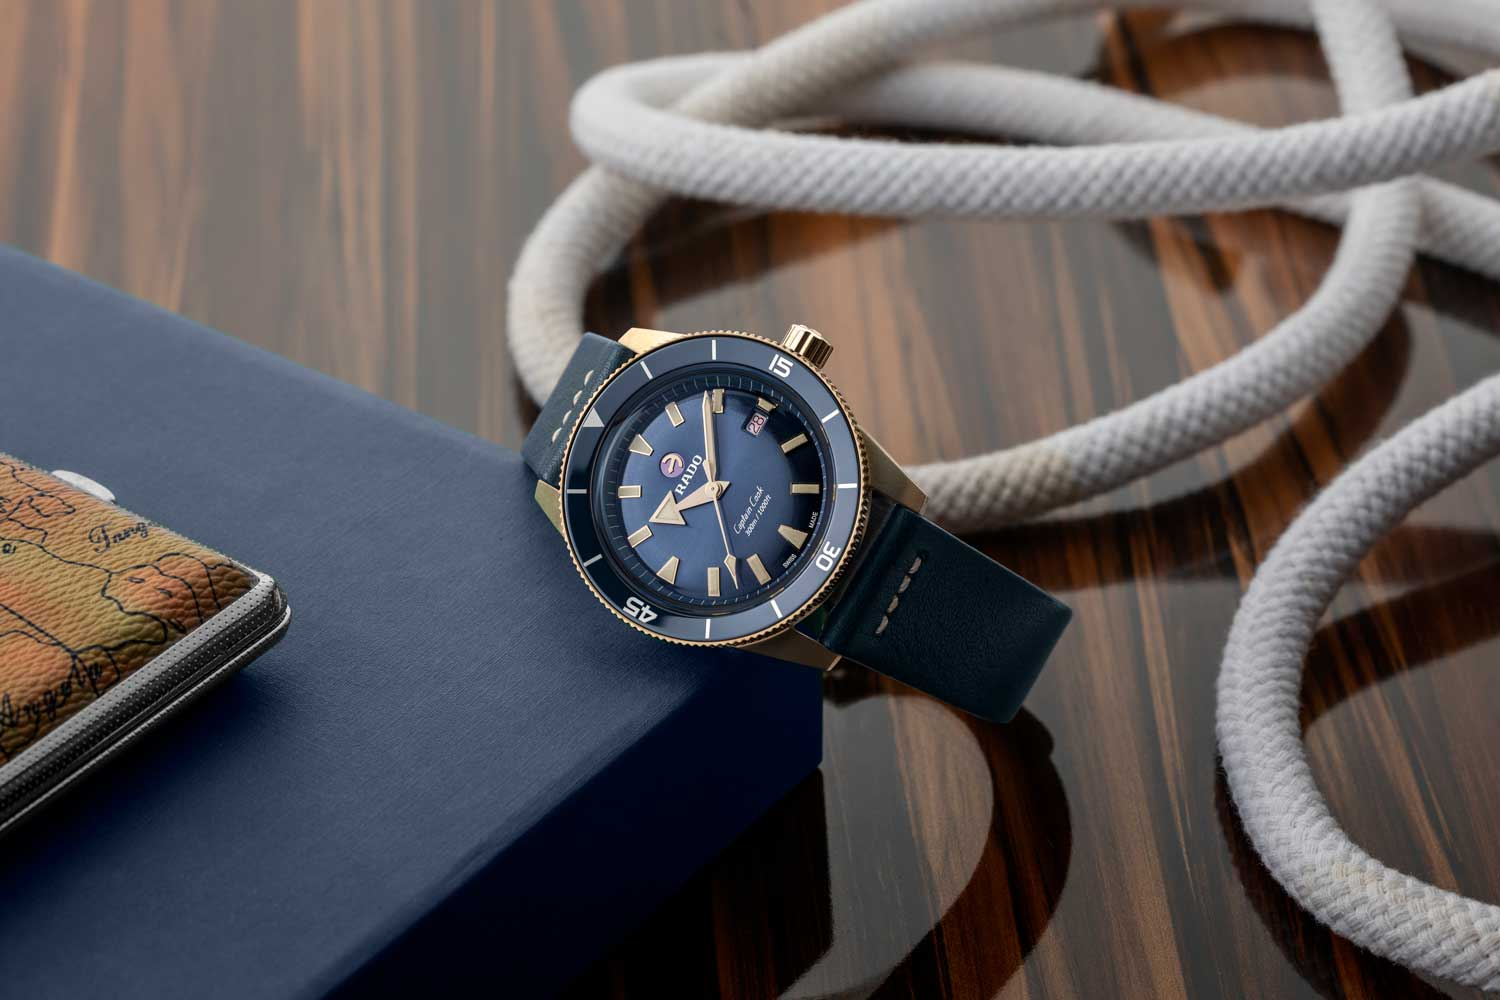 The Captain Cook Bronze in blue with matching ceramic bezels and leather straps (©Revolution)